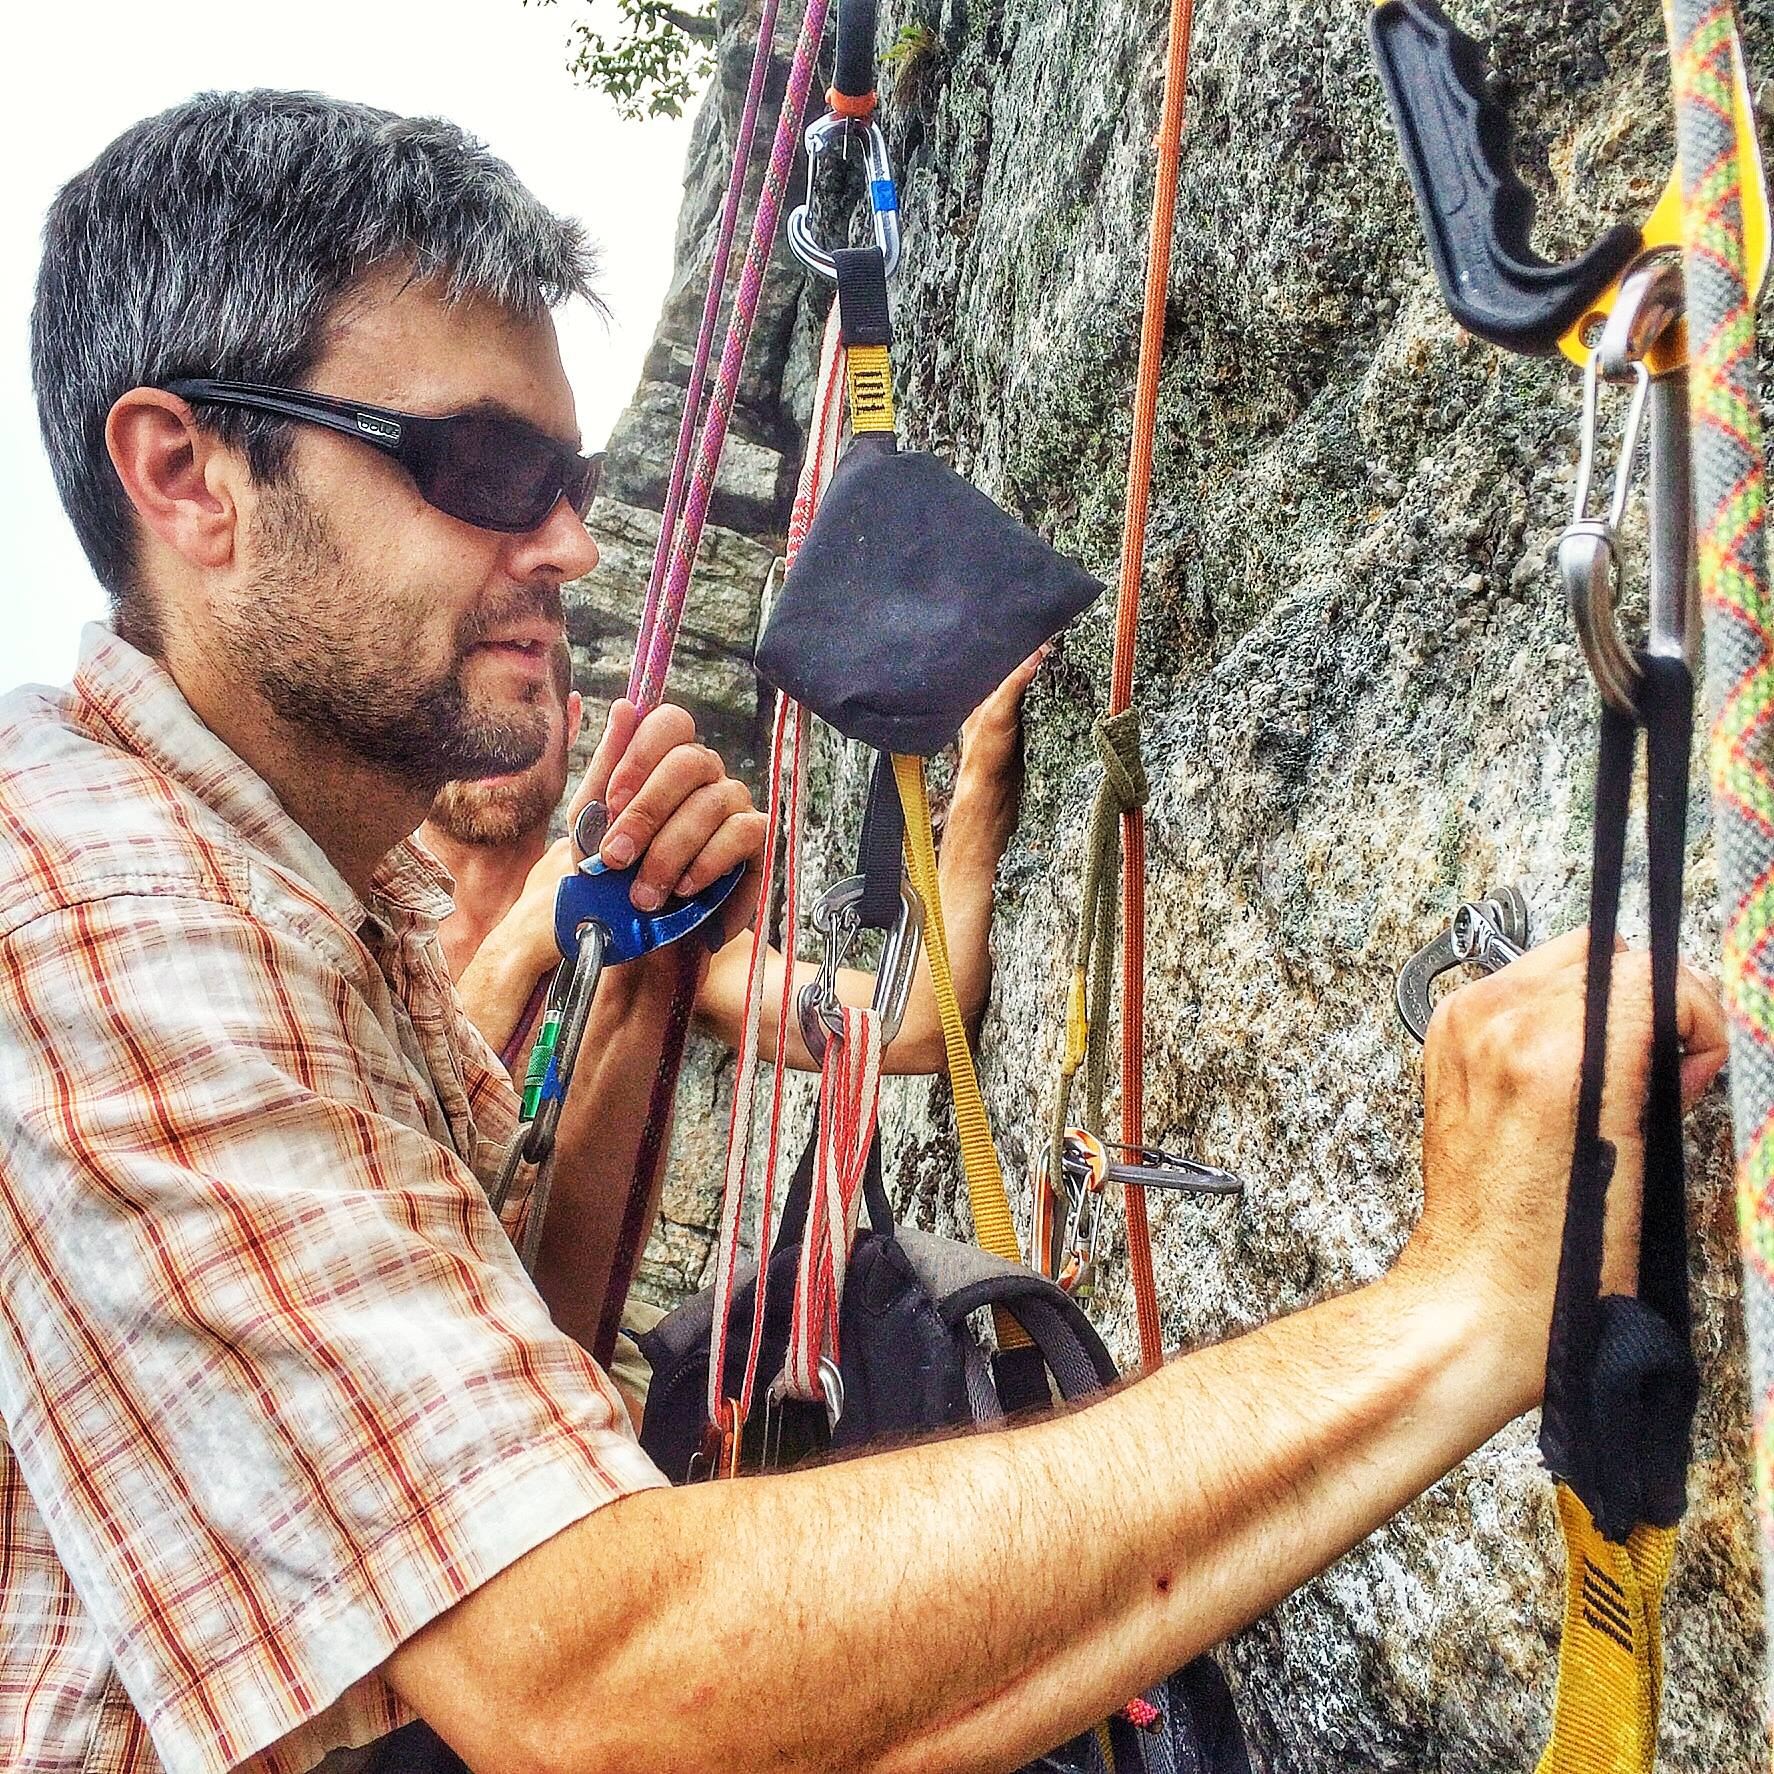 Christian Fracchia replacing the old bolt on the climb Turdland at the Gunks.